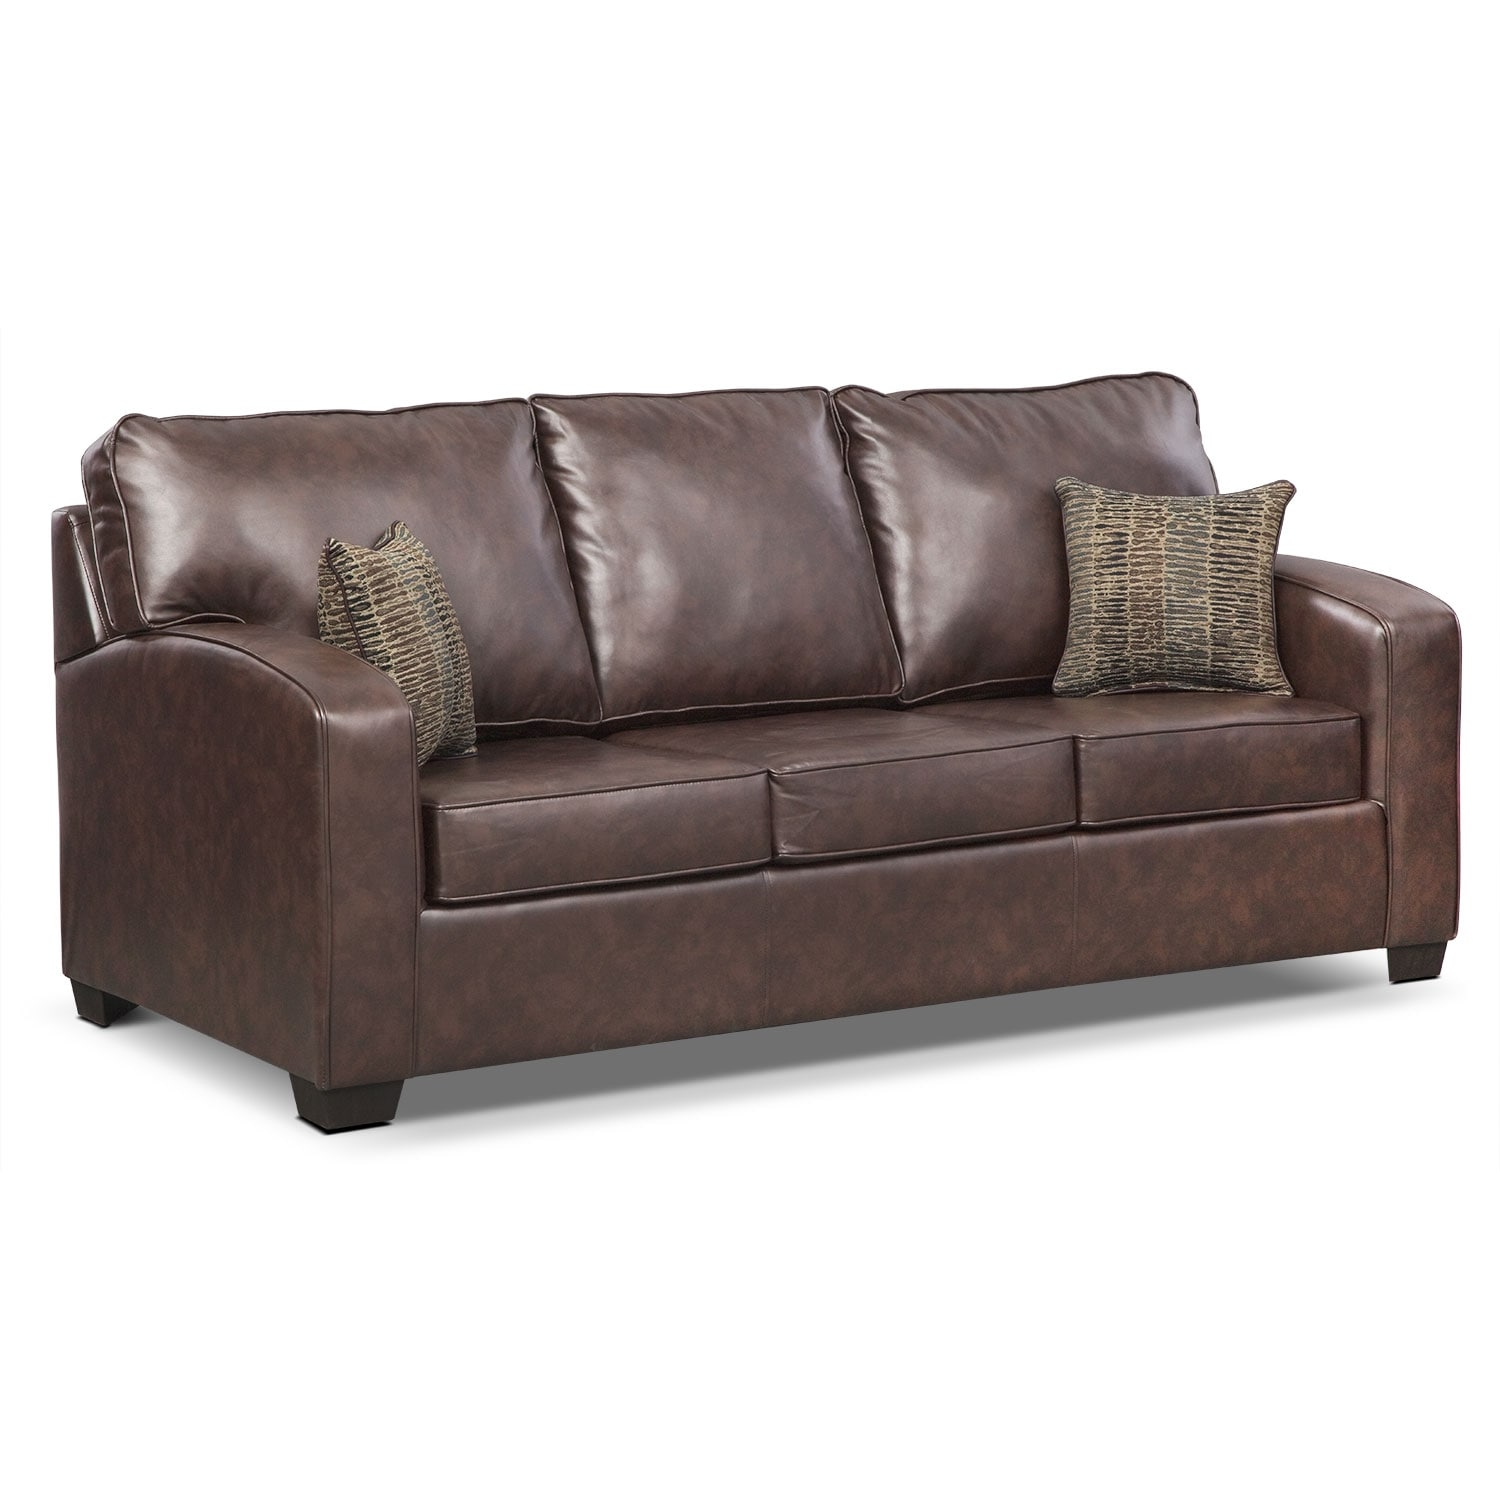 Brookline Queen Memory Foam Sleeper Sofa - Brown